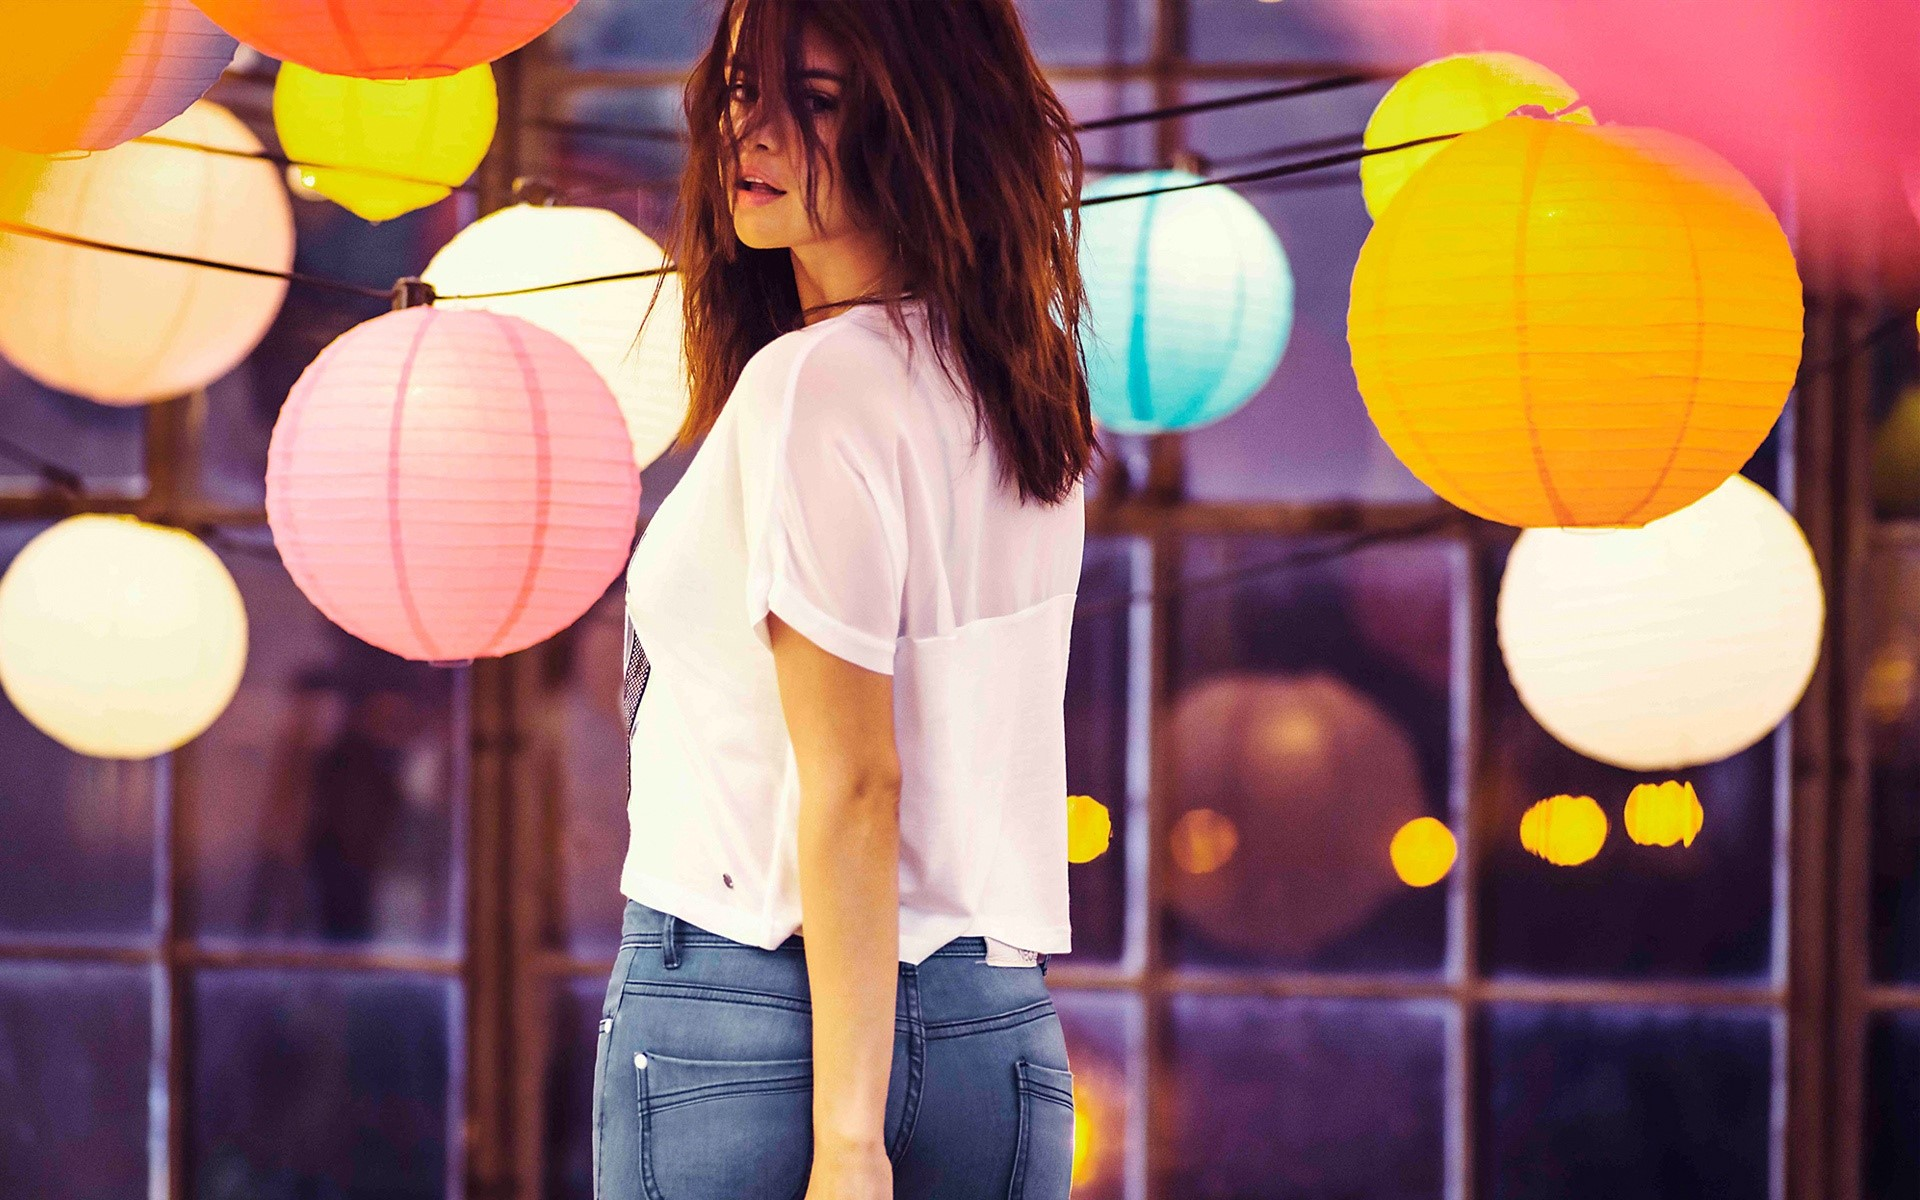 Wallpaper Selena Gomez with colorful lights